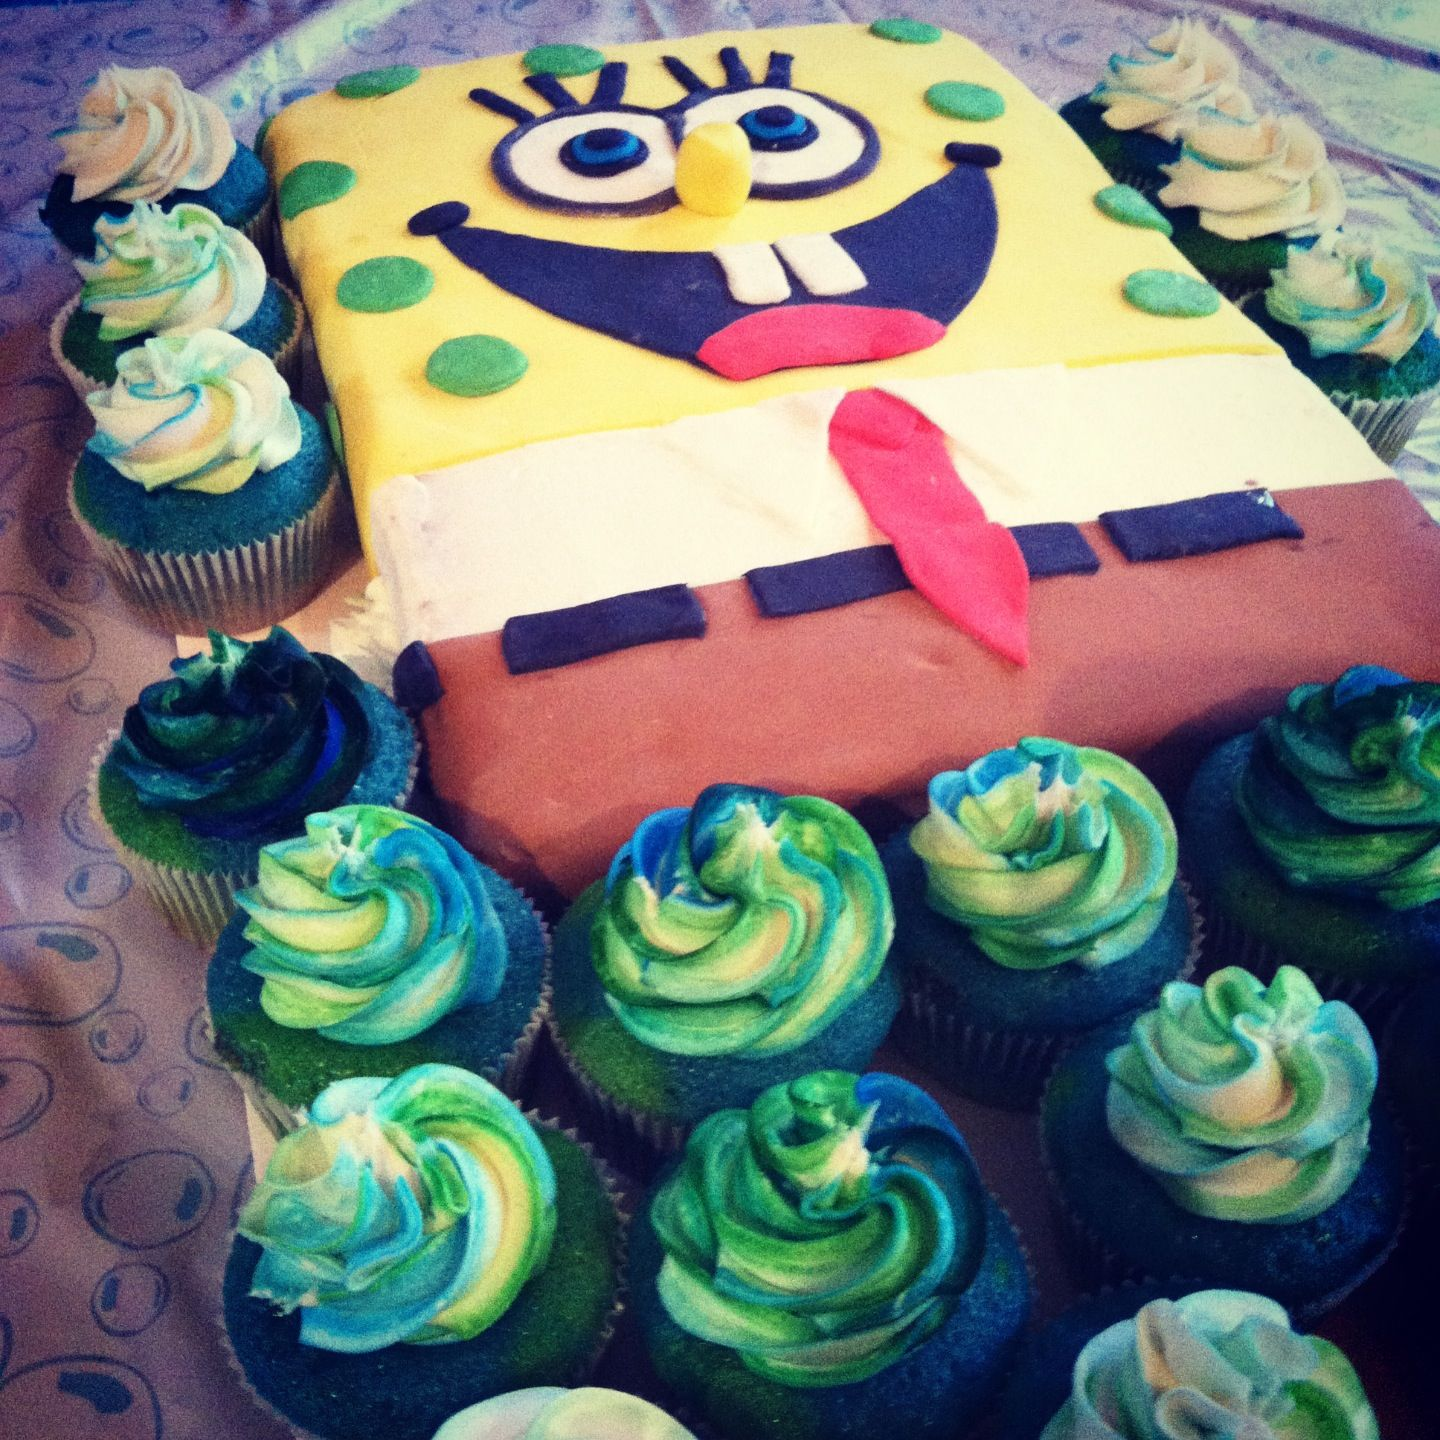 Custom Sponge Bob Cake For A Birthday Party Dayton Ohio